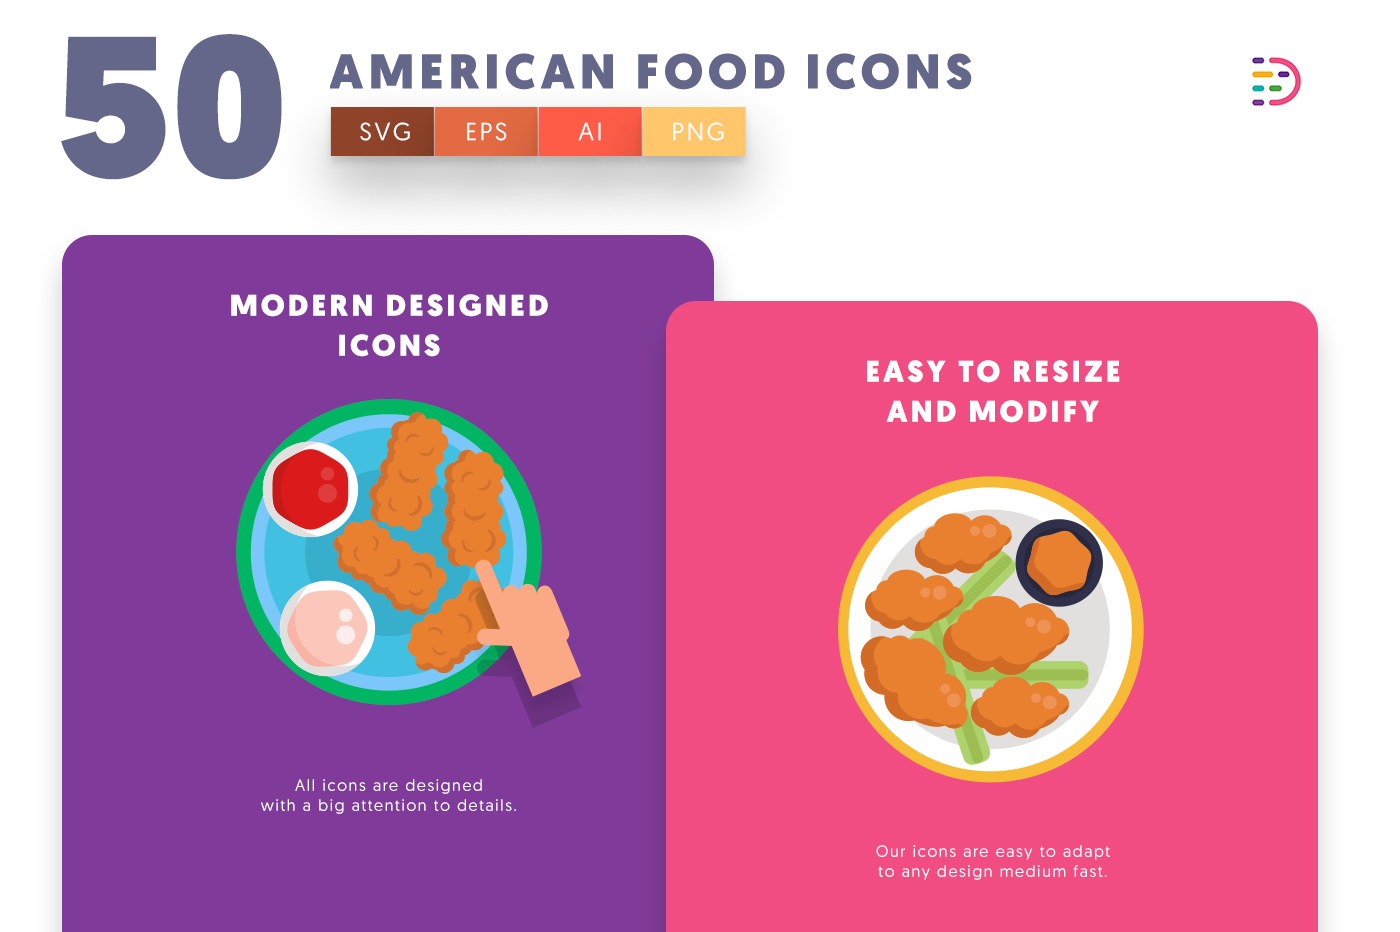 American Food icons png/svg/eps